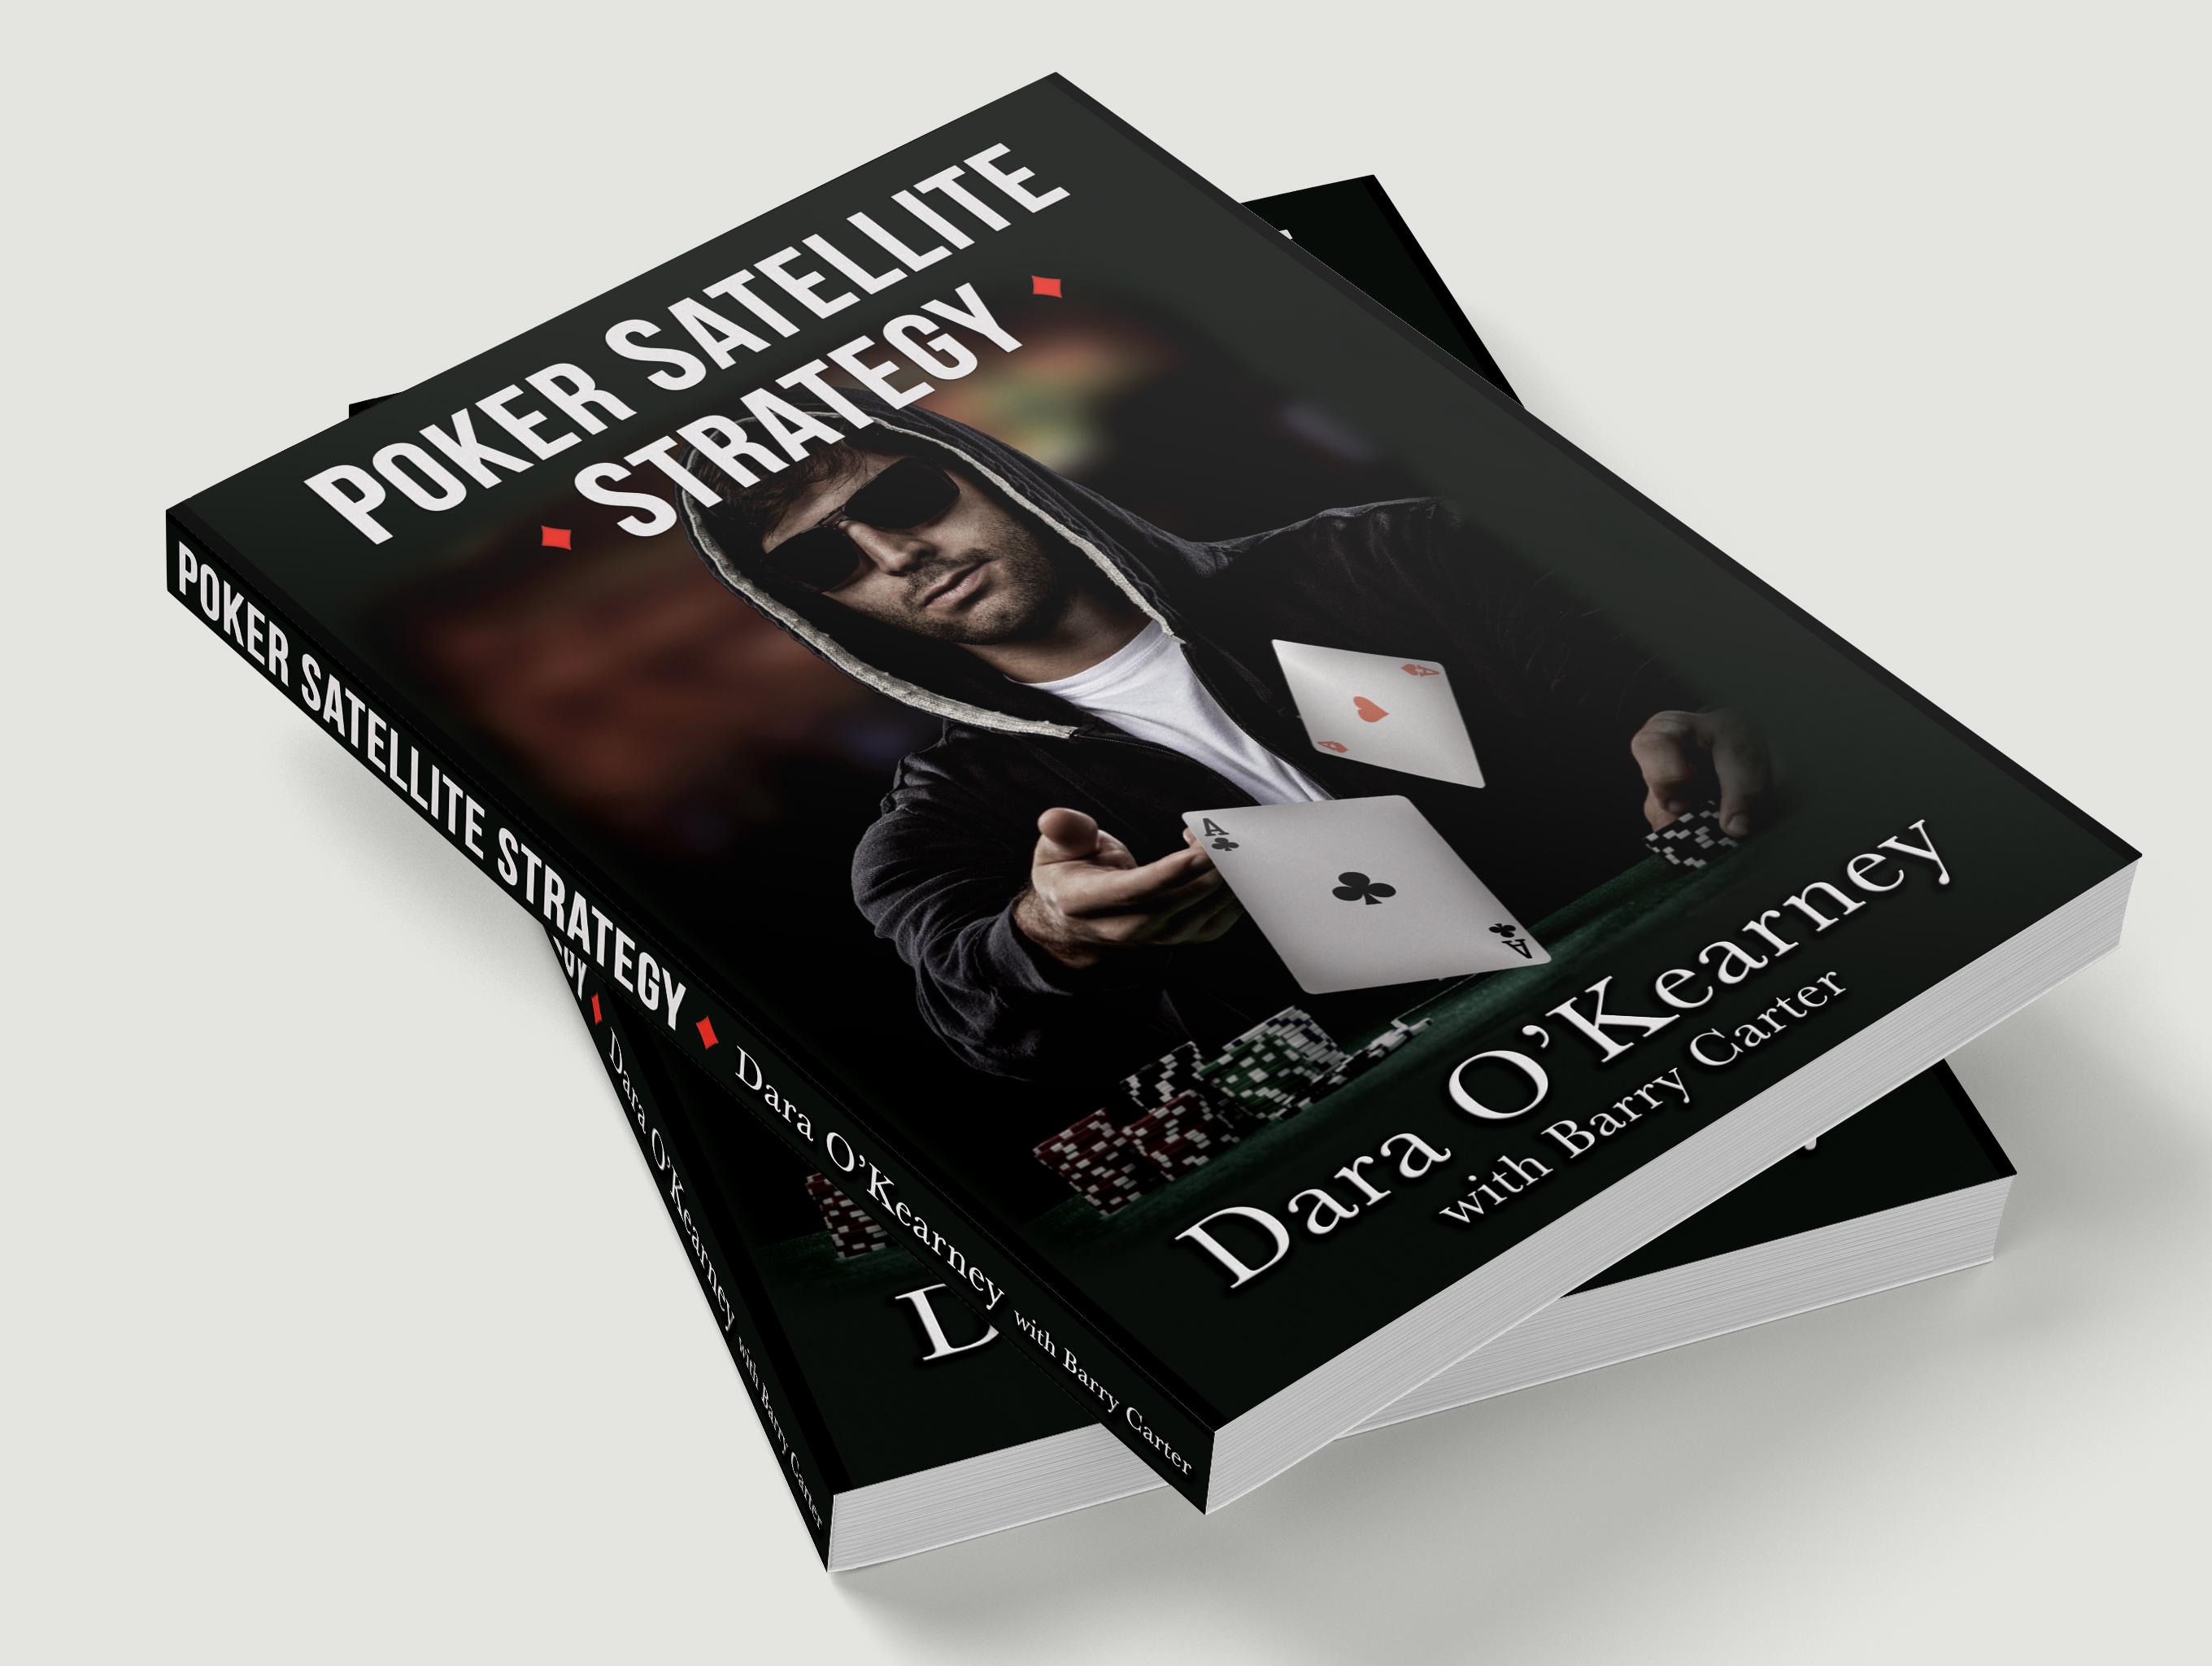 Poker Satellite Strategy book cover design